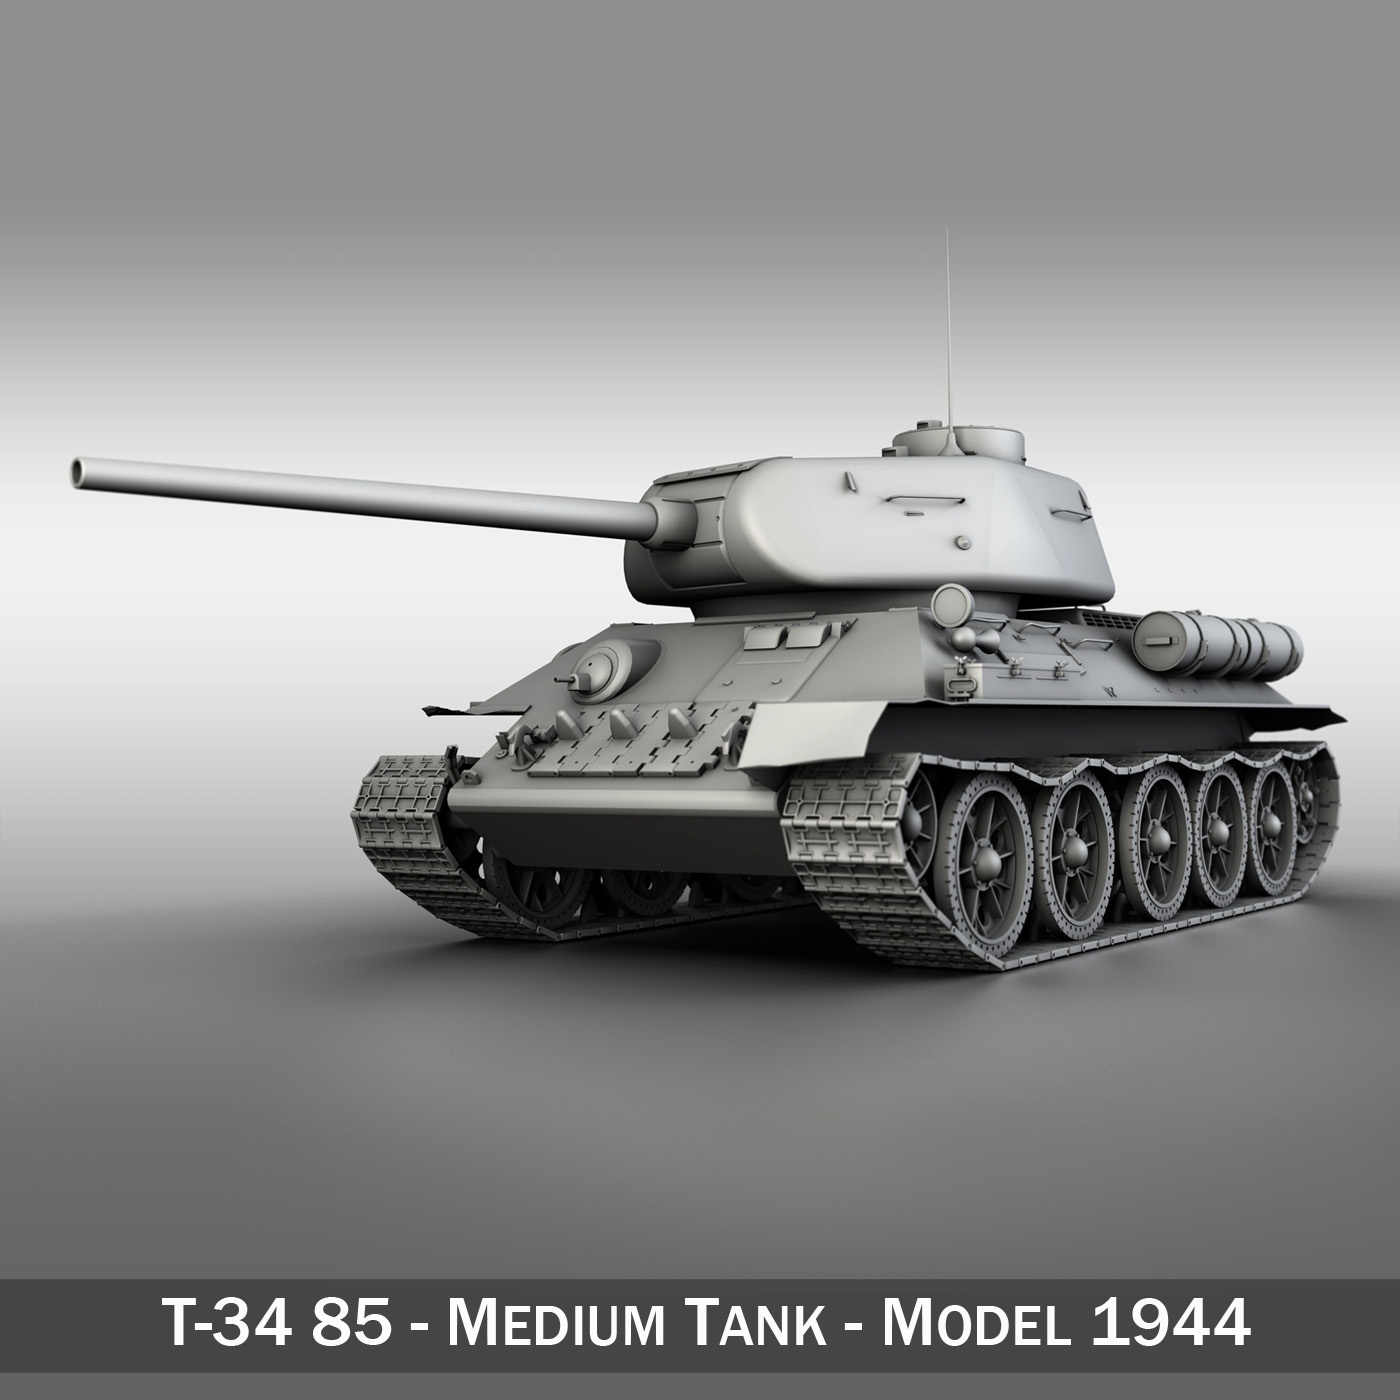 t-34 85 – soviet medium tank 3d model 3ds fbx lwo lw lws obj c4d 266408